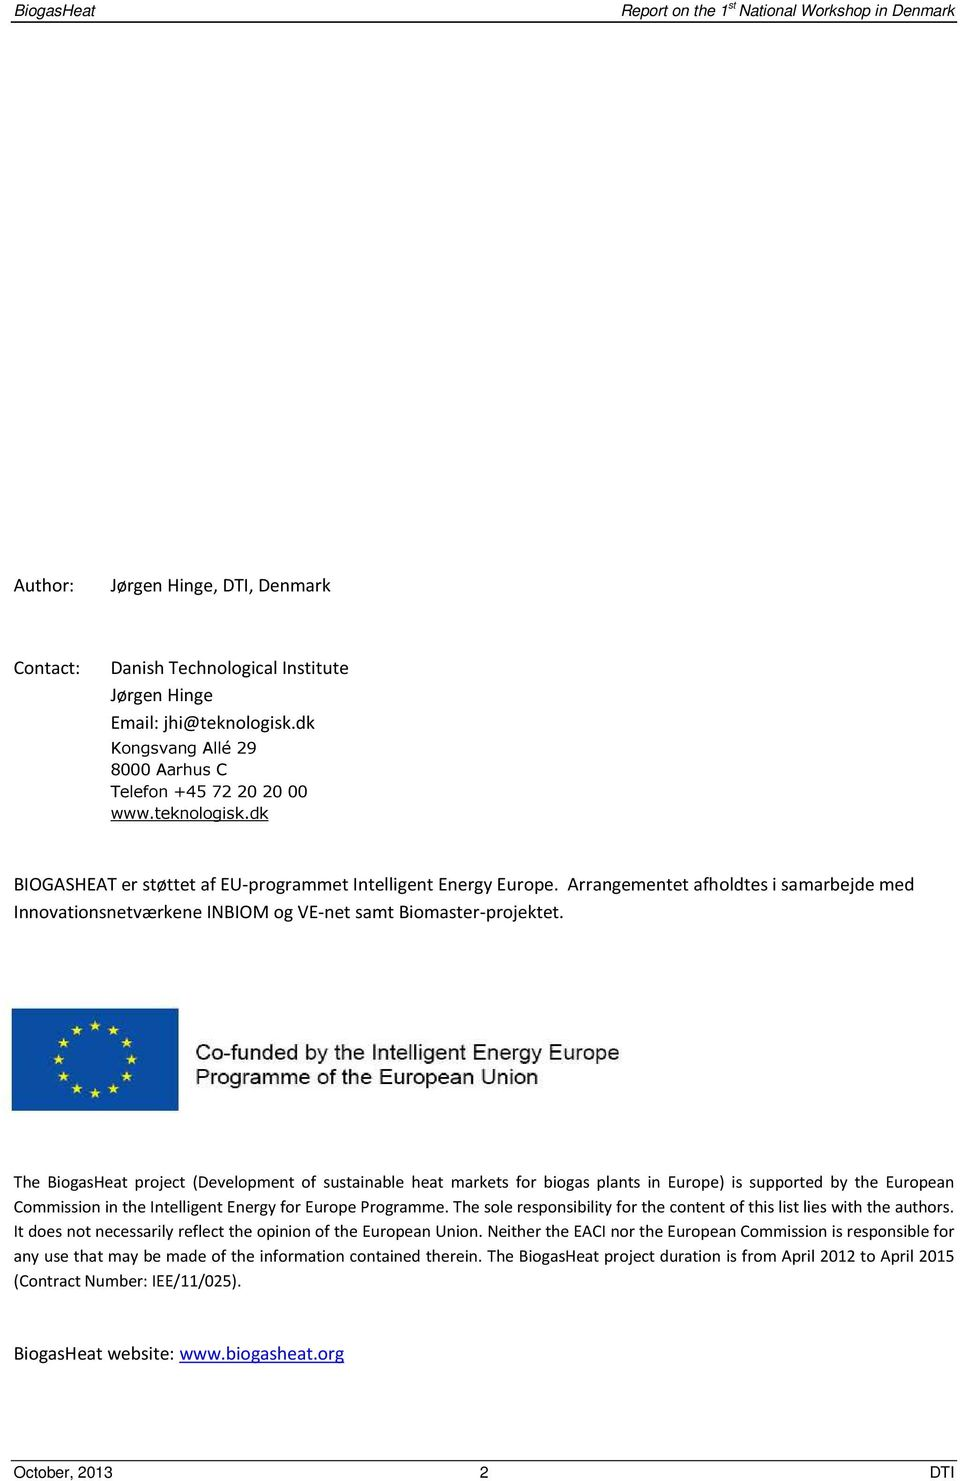 The BiogasHeat project (Development of sustainable heat markets for biogas plants in Europe) is supported by the European Commission in the Intelligent Energy for Europe Programme.